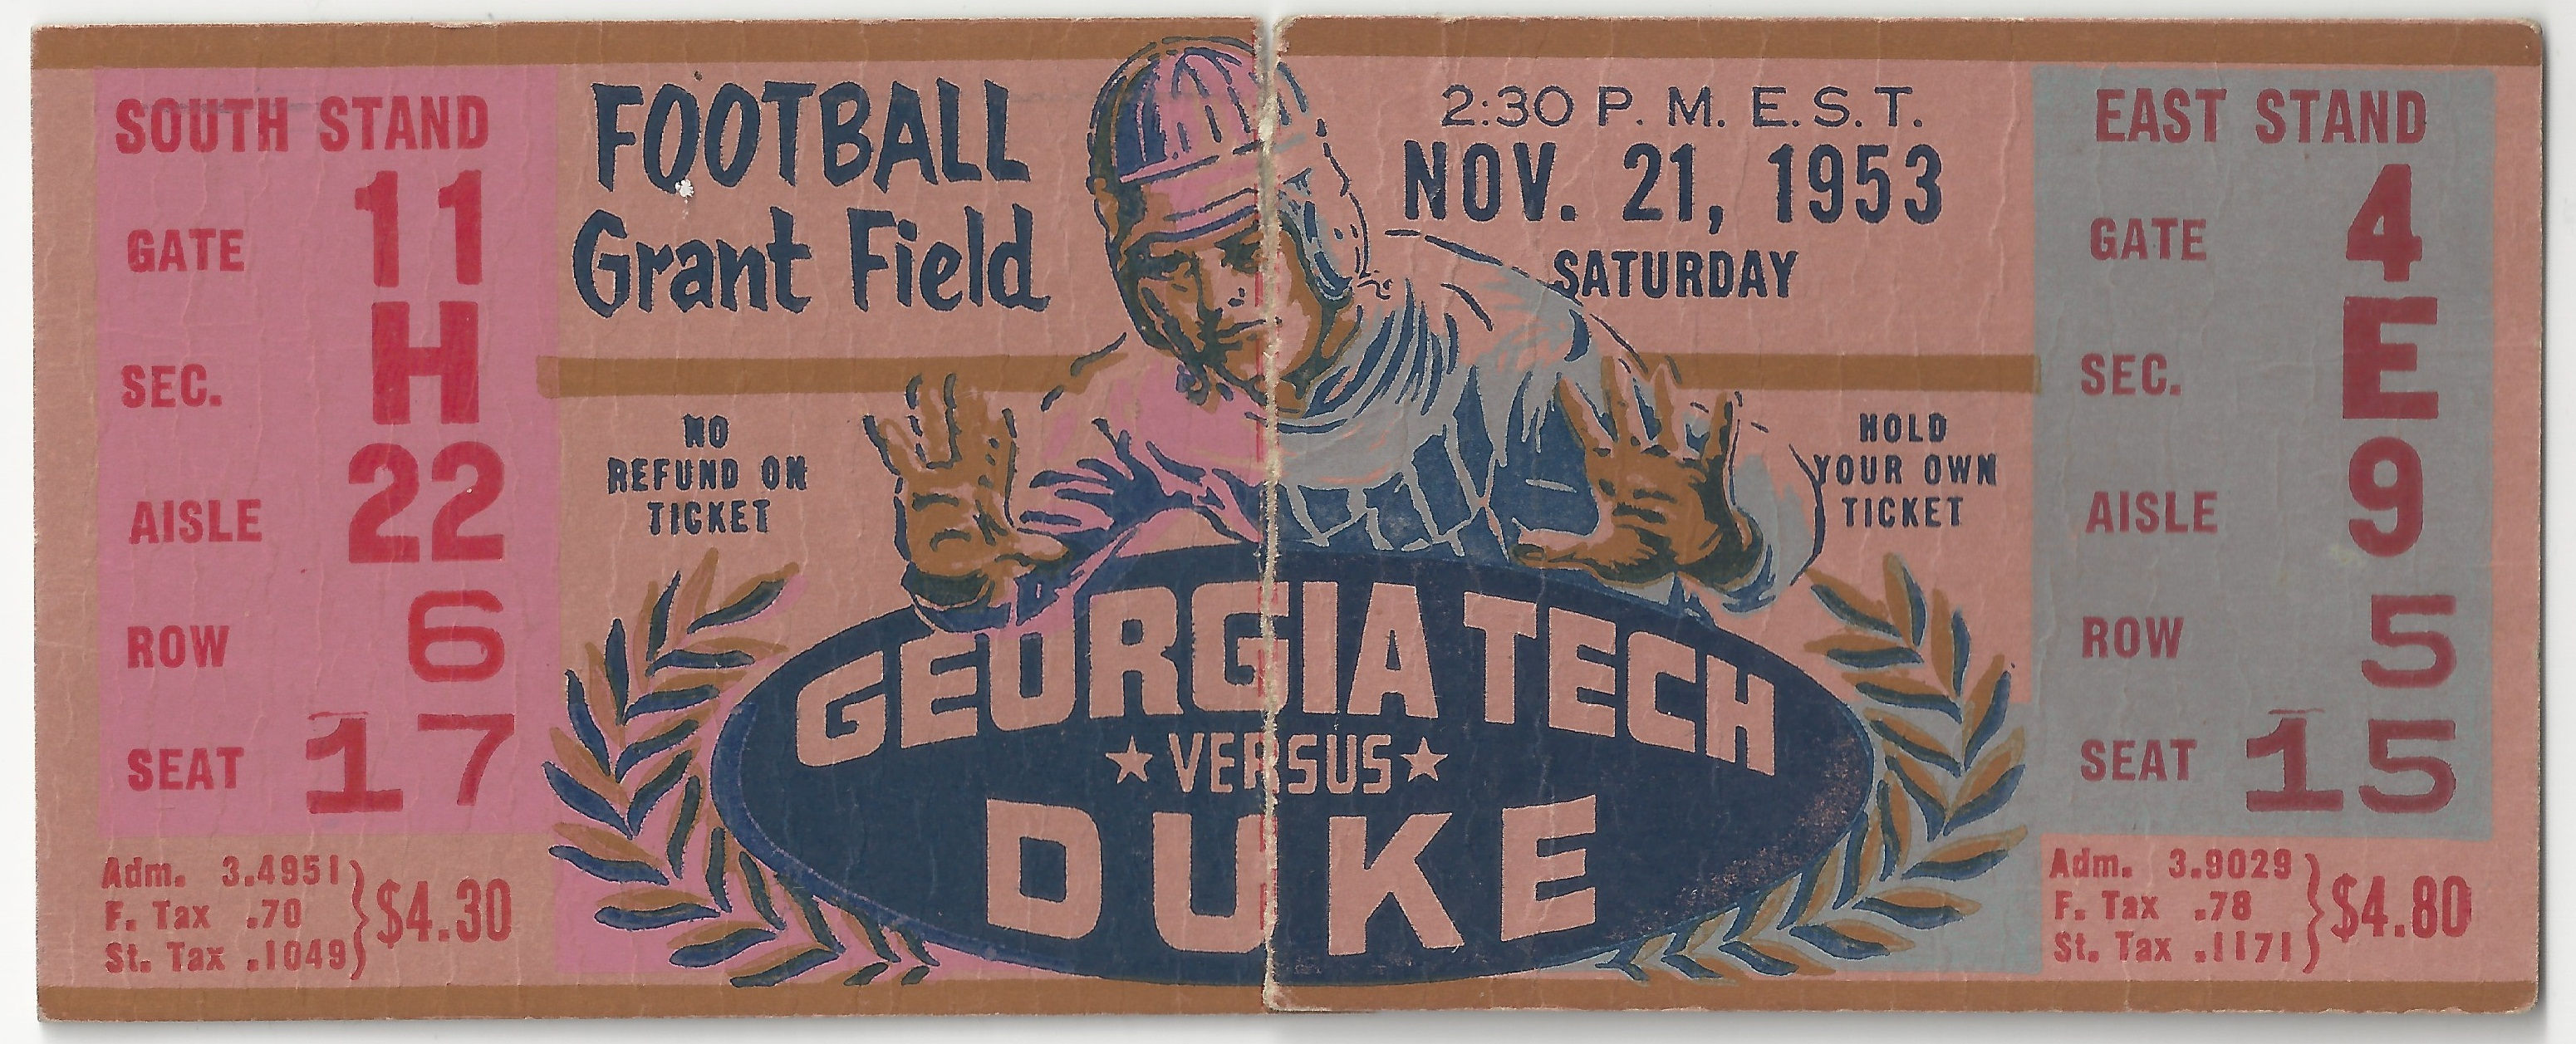 Georgia Tech vs. Duke - 1953